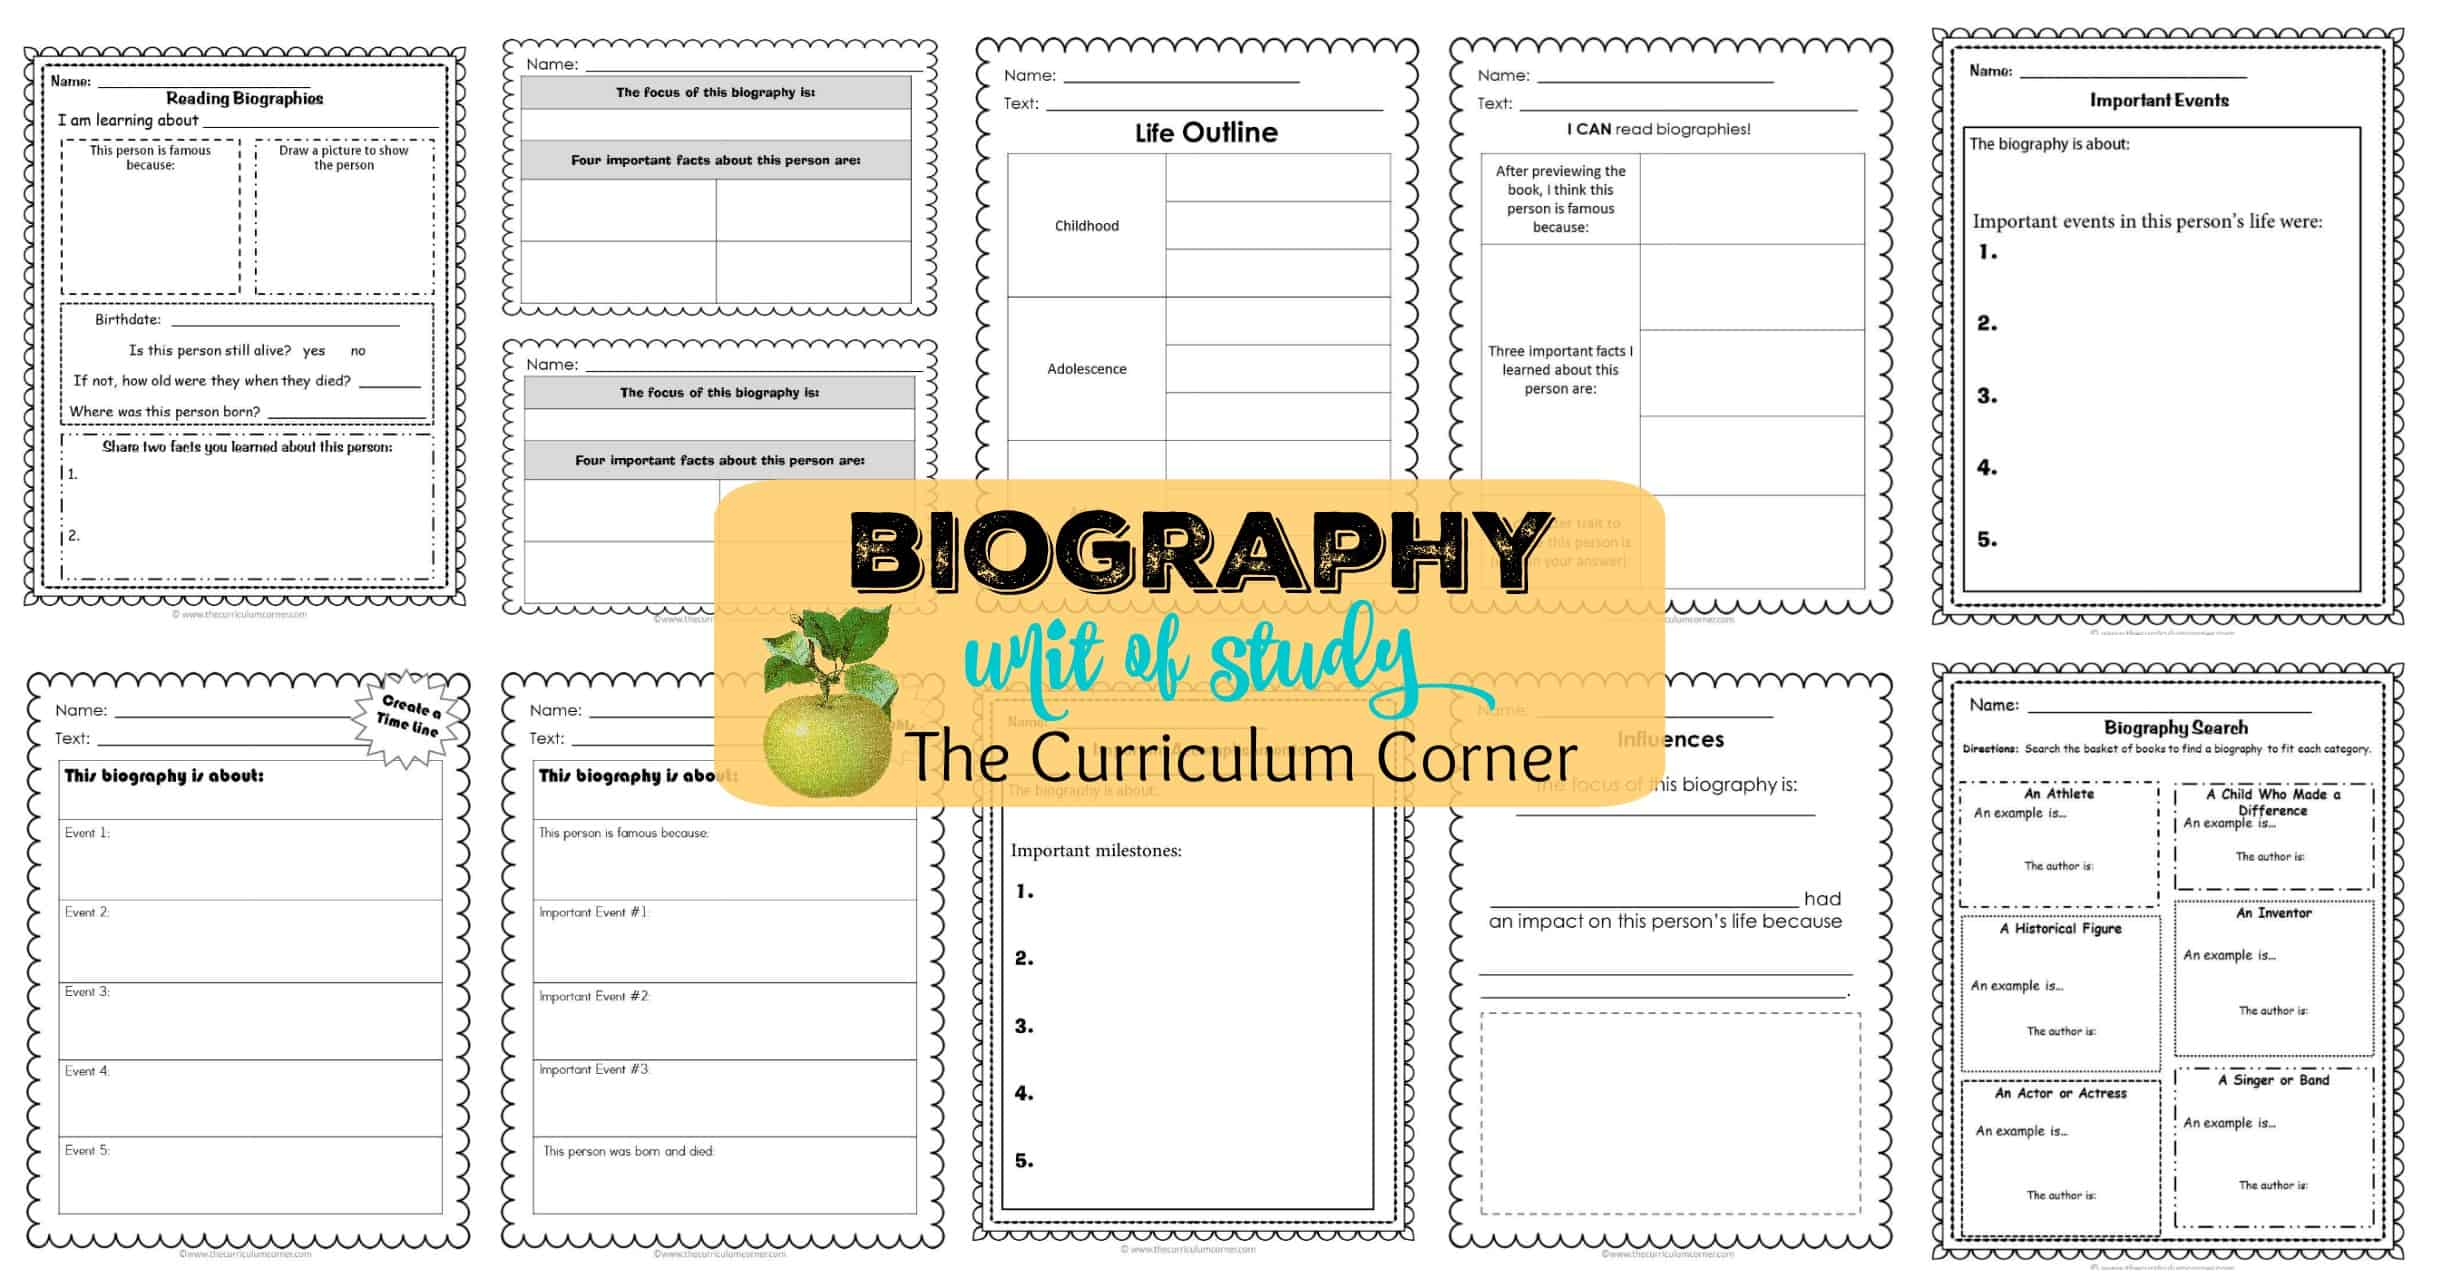 Biography Unit of Study for Reading - The Curriculum Corner 123 [ 1288 x 2442 Pixel ]